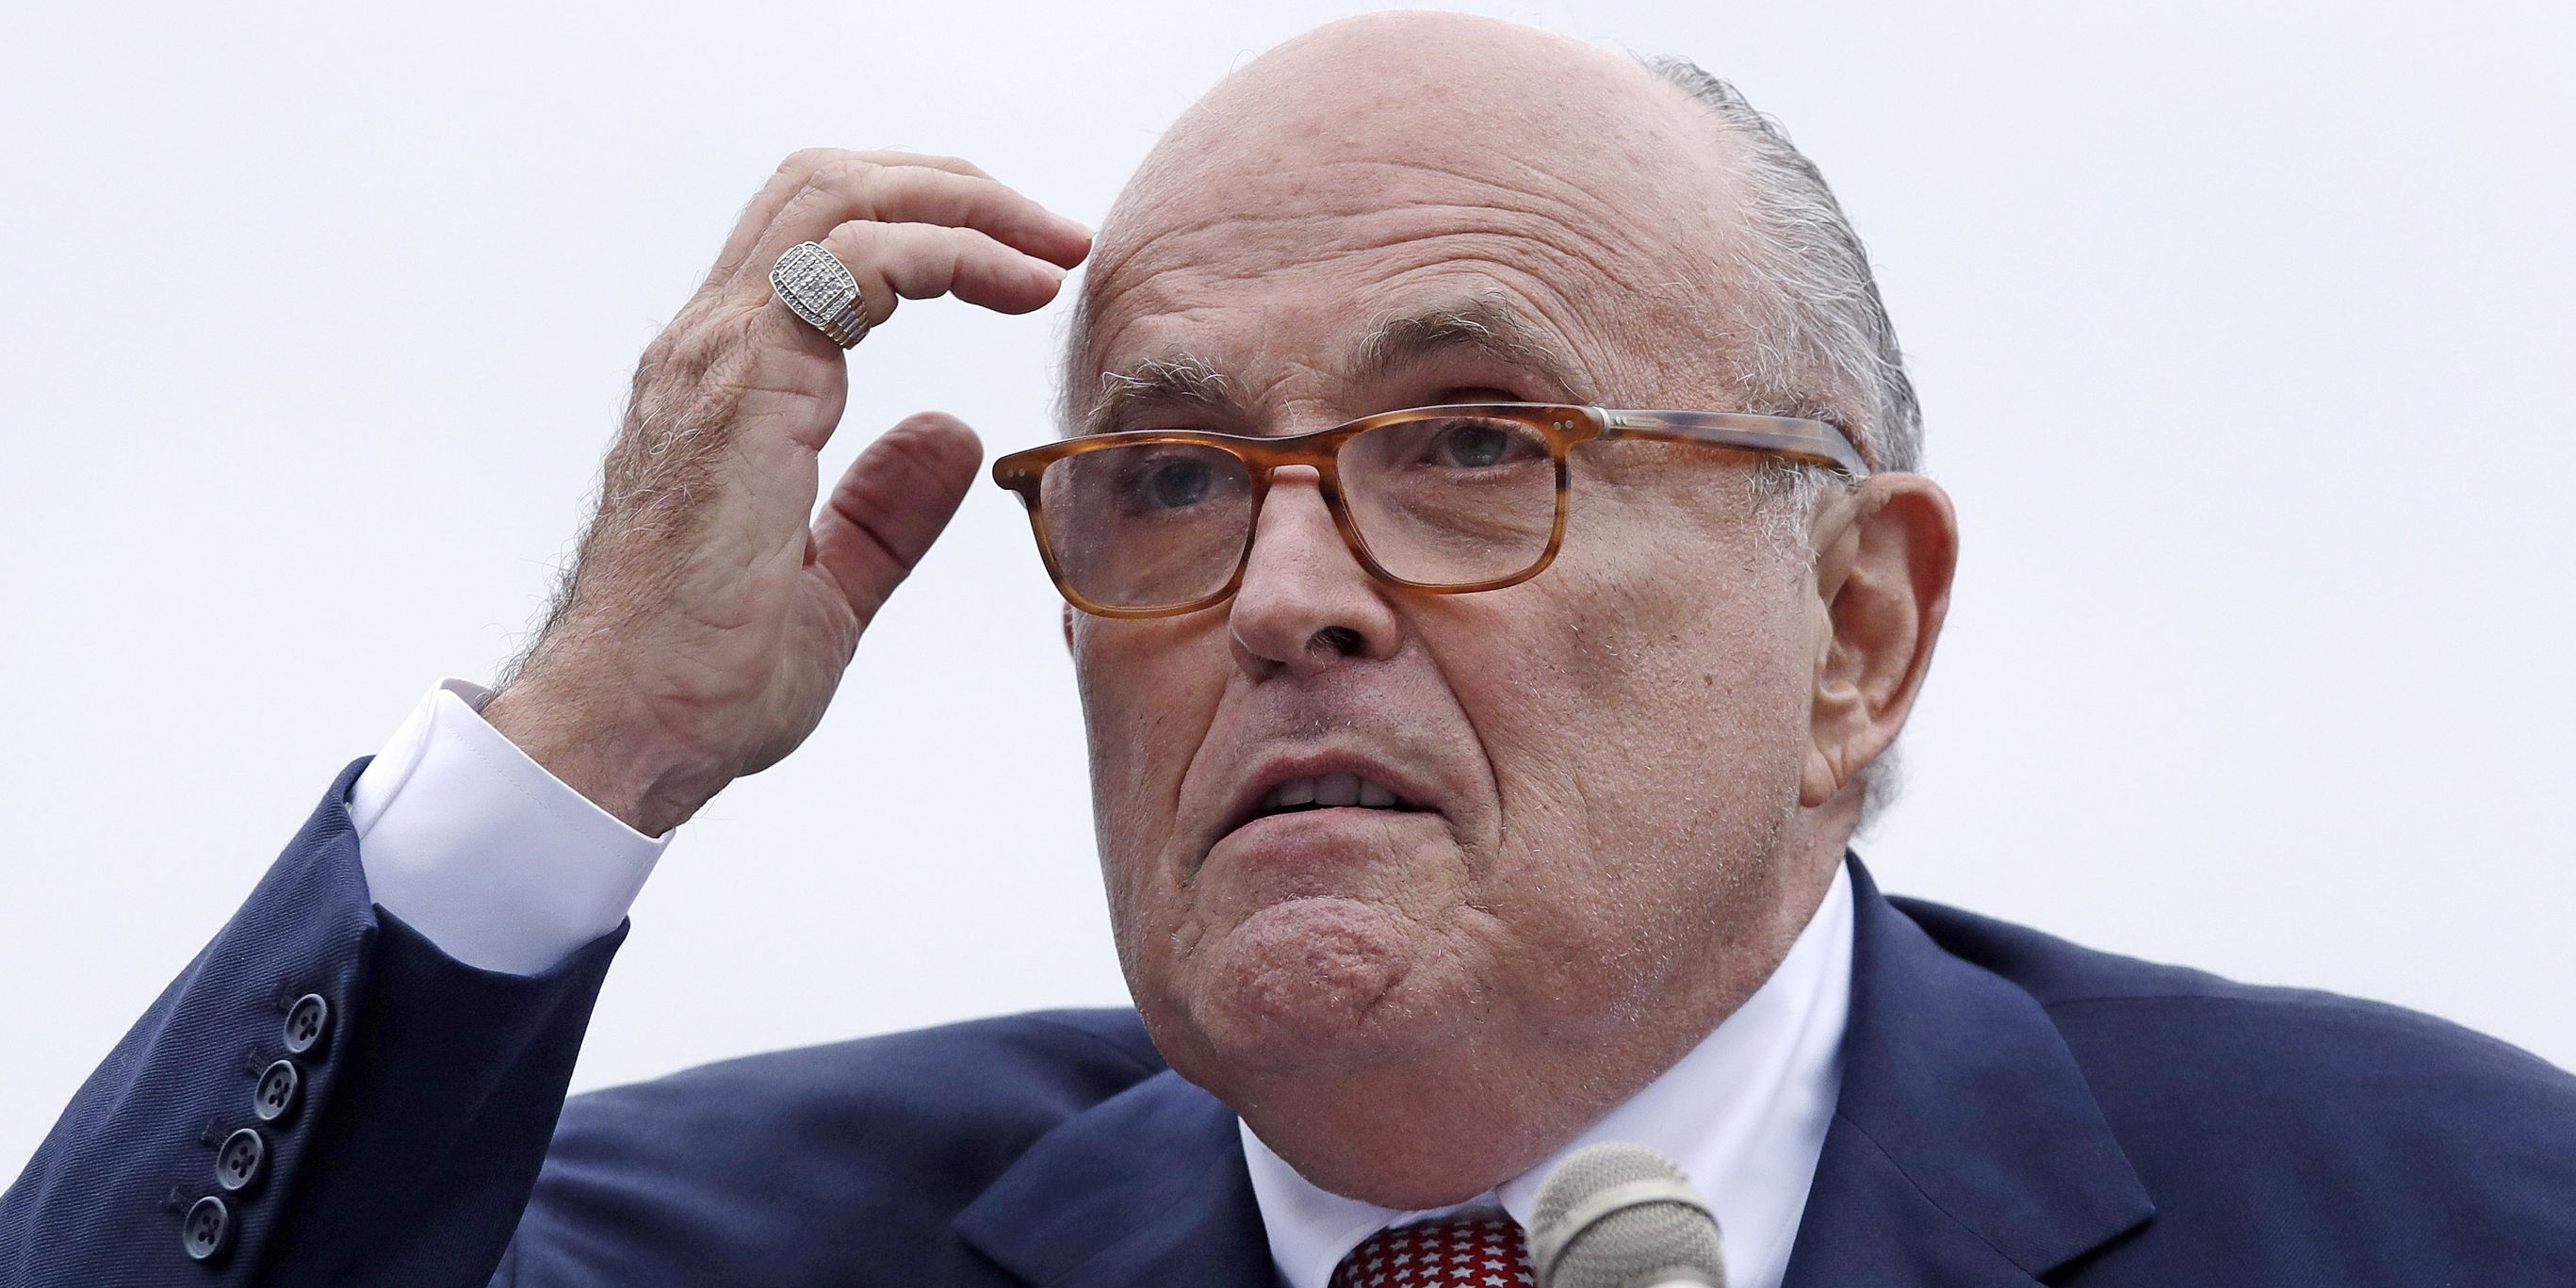 Giuliani's tweet links to a 'Trump is a traitor' website. He blamed Twitter, but his typo is responsible.